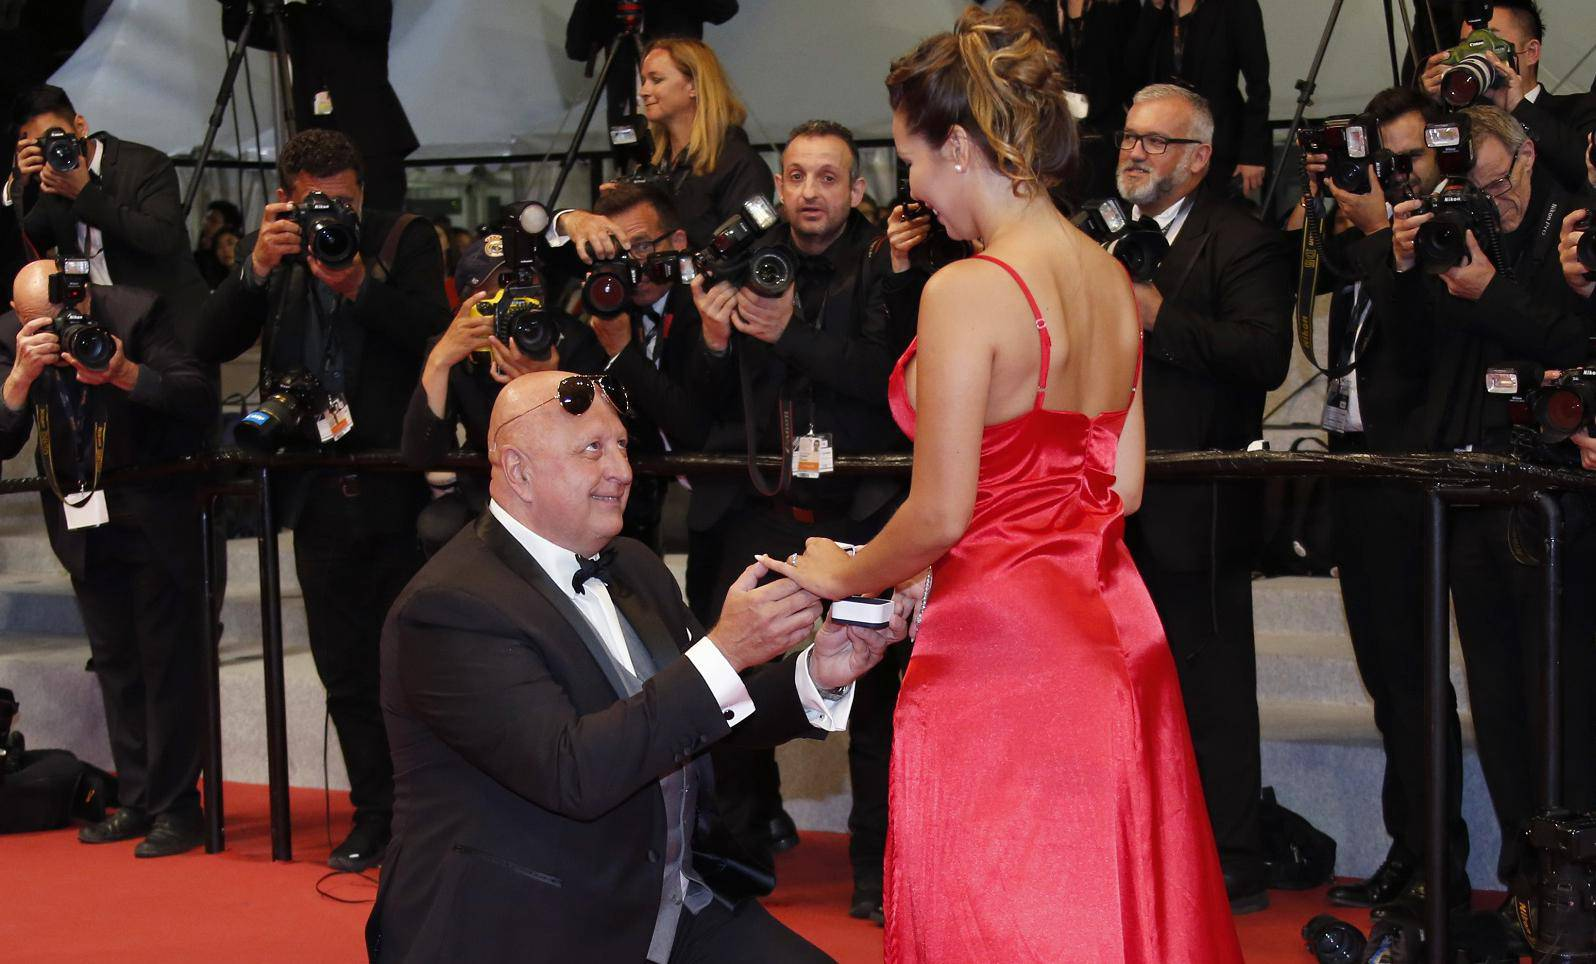 """72nd Cannes Film Festival - Screening of the film """"Mektoub My Love: Intermezzo"""" in competition - Red Carpet Arrivals"""